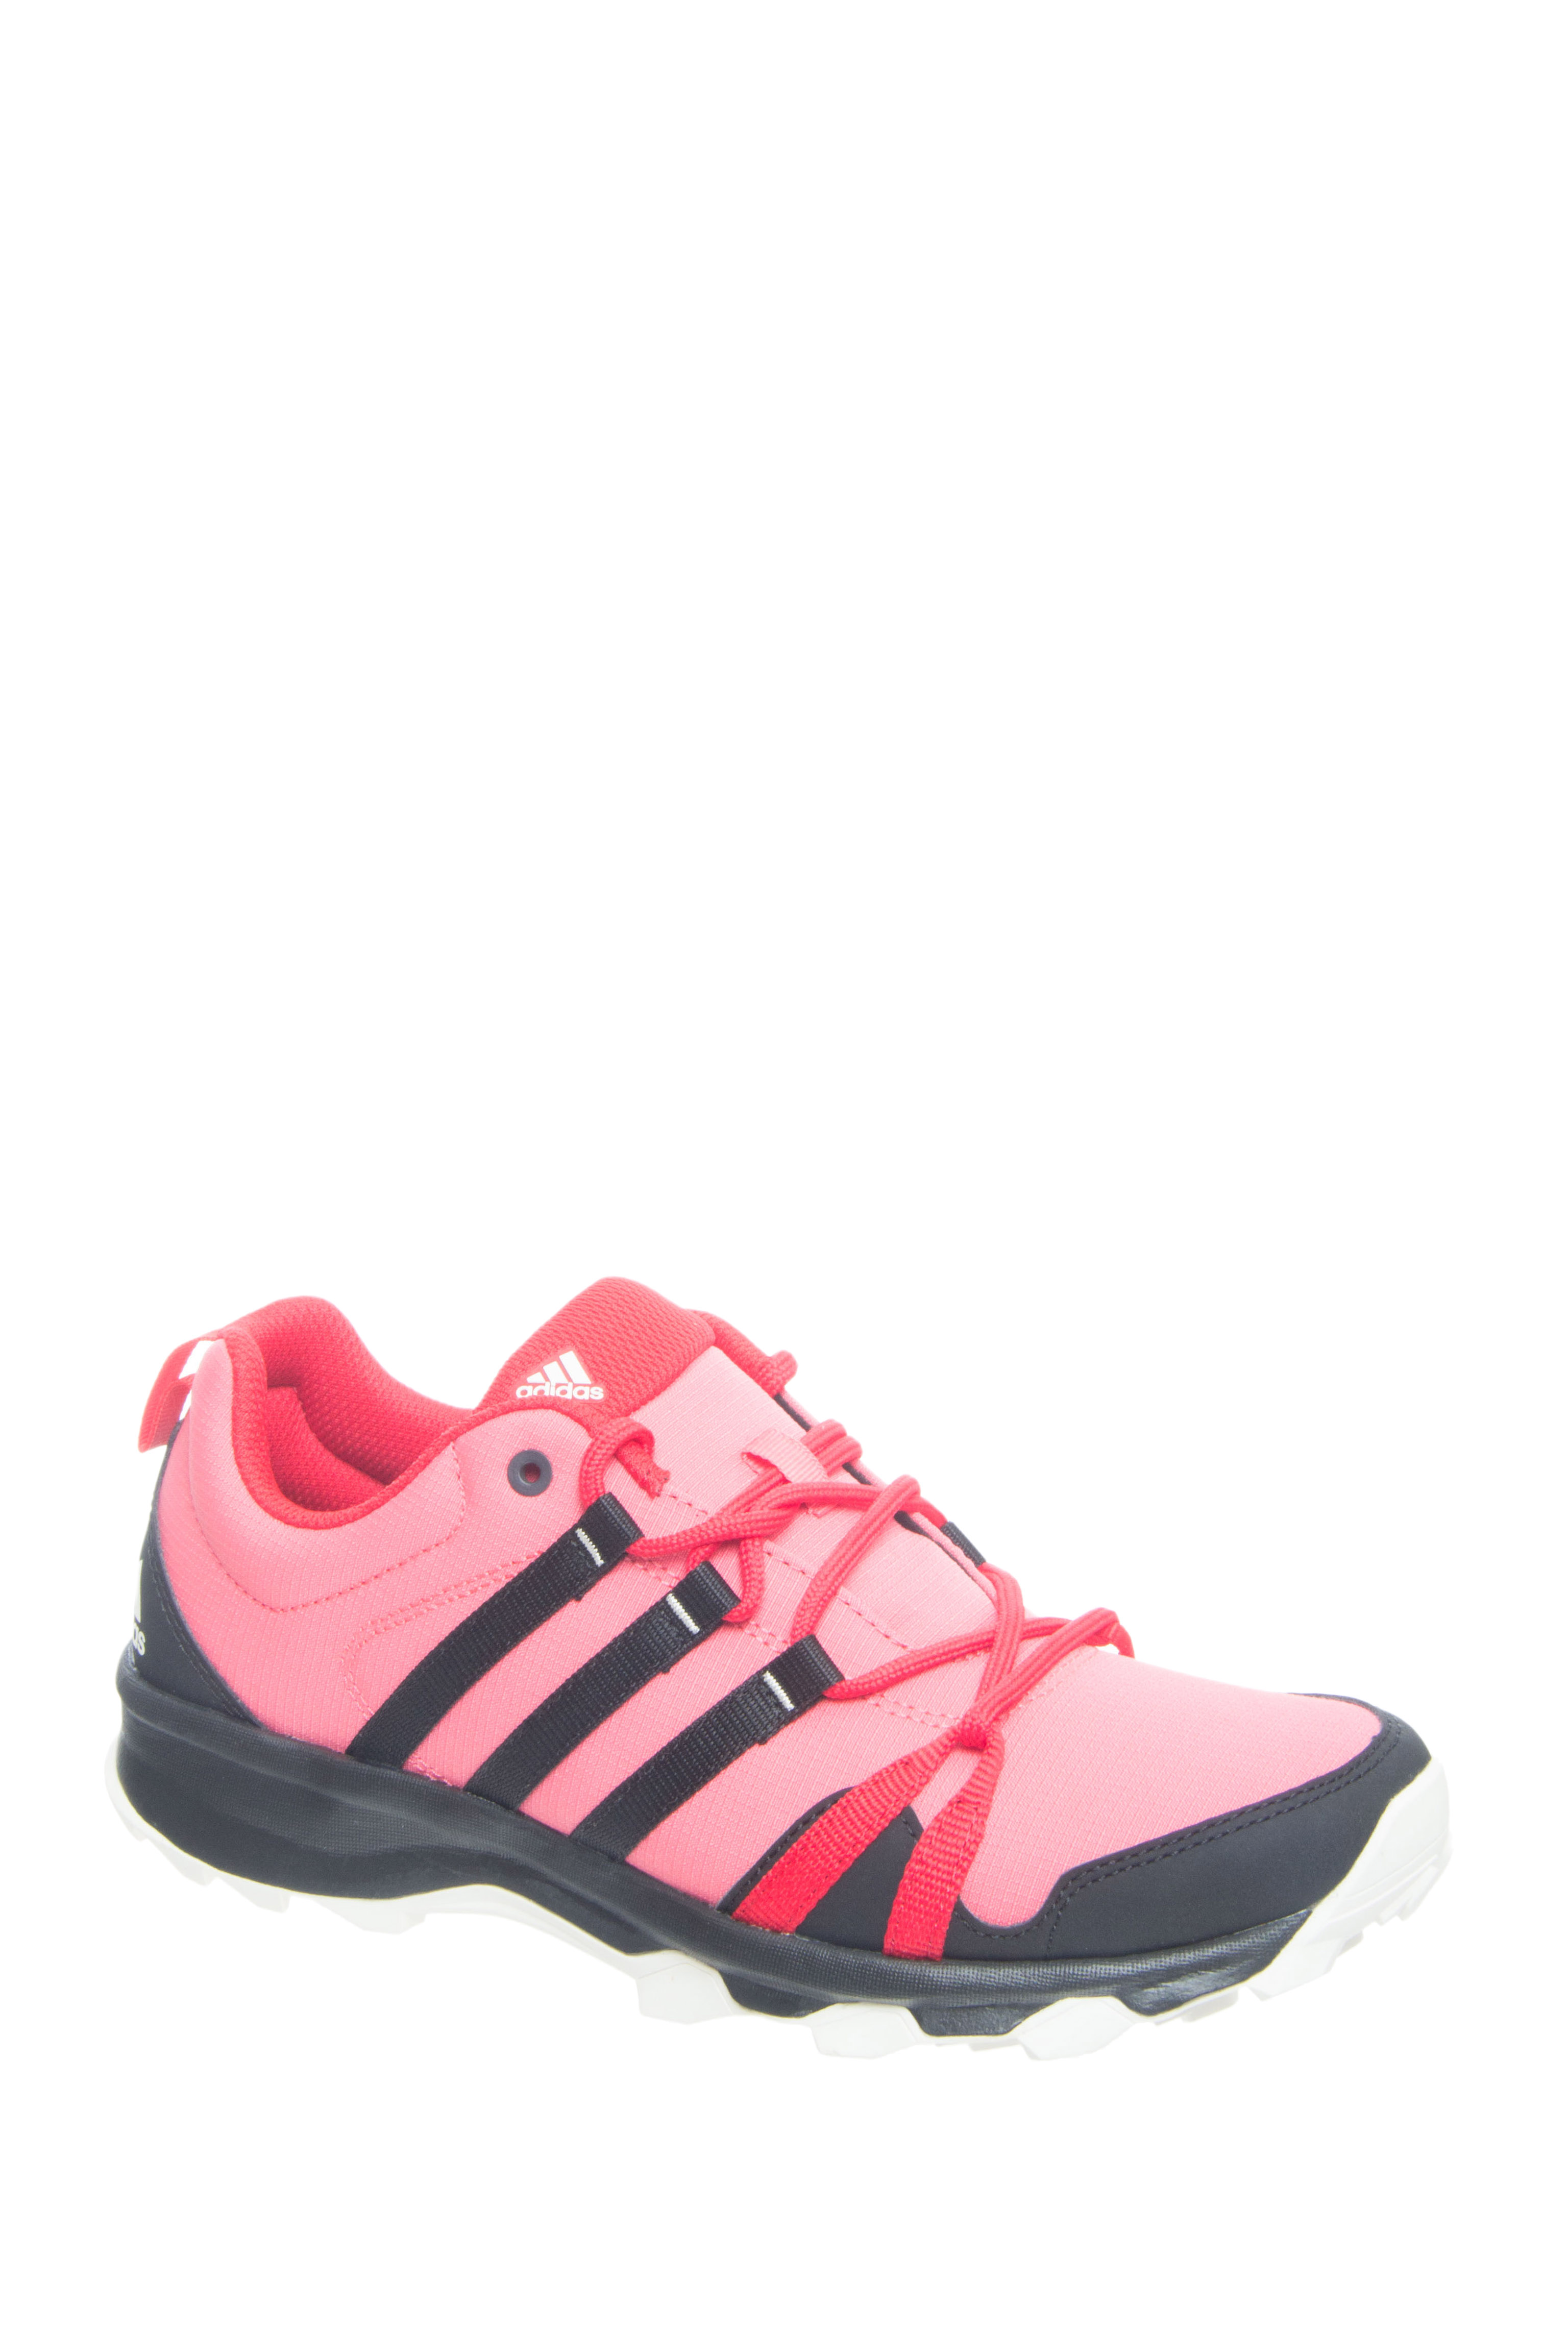 Adidas Outdoor Tracerocker Lace Up Running Sneakers - Red / Black